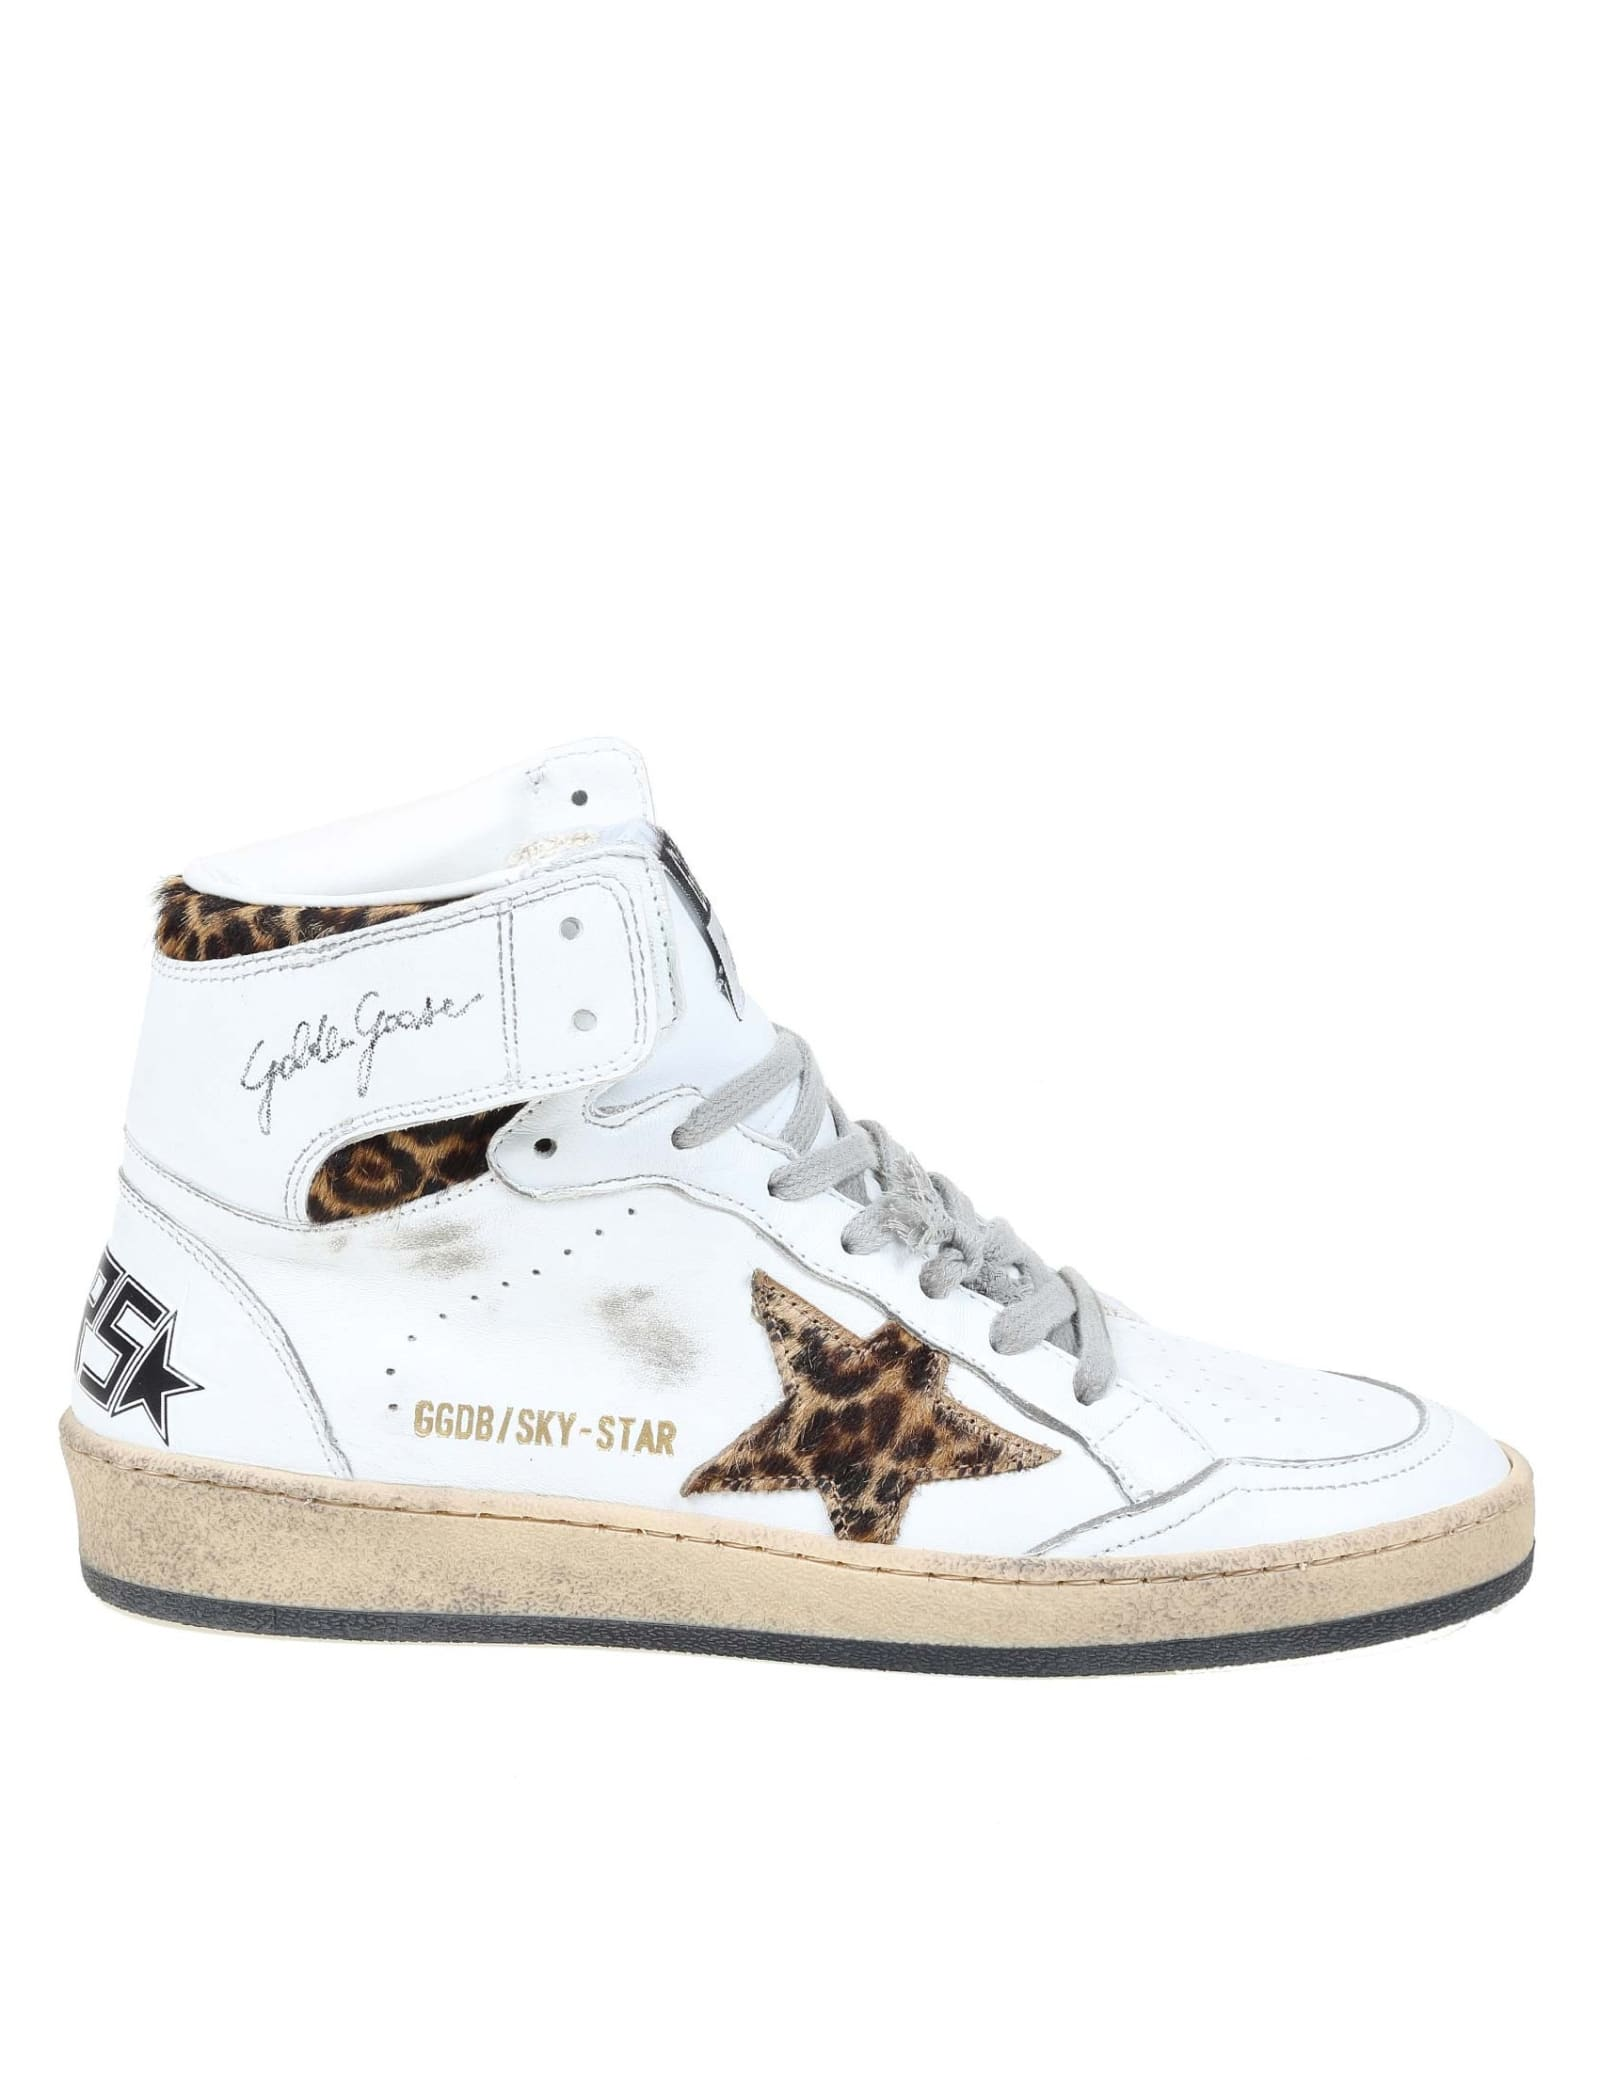 Golden Goose Sky Star Sneakers In Leather With Horse Star